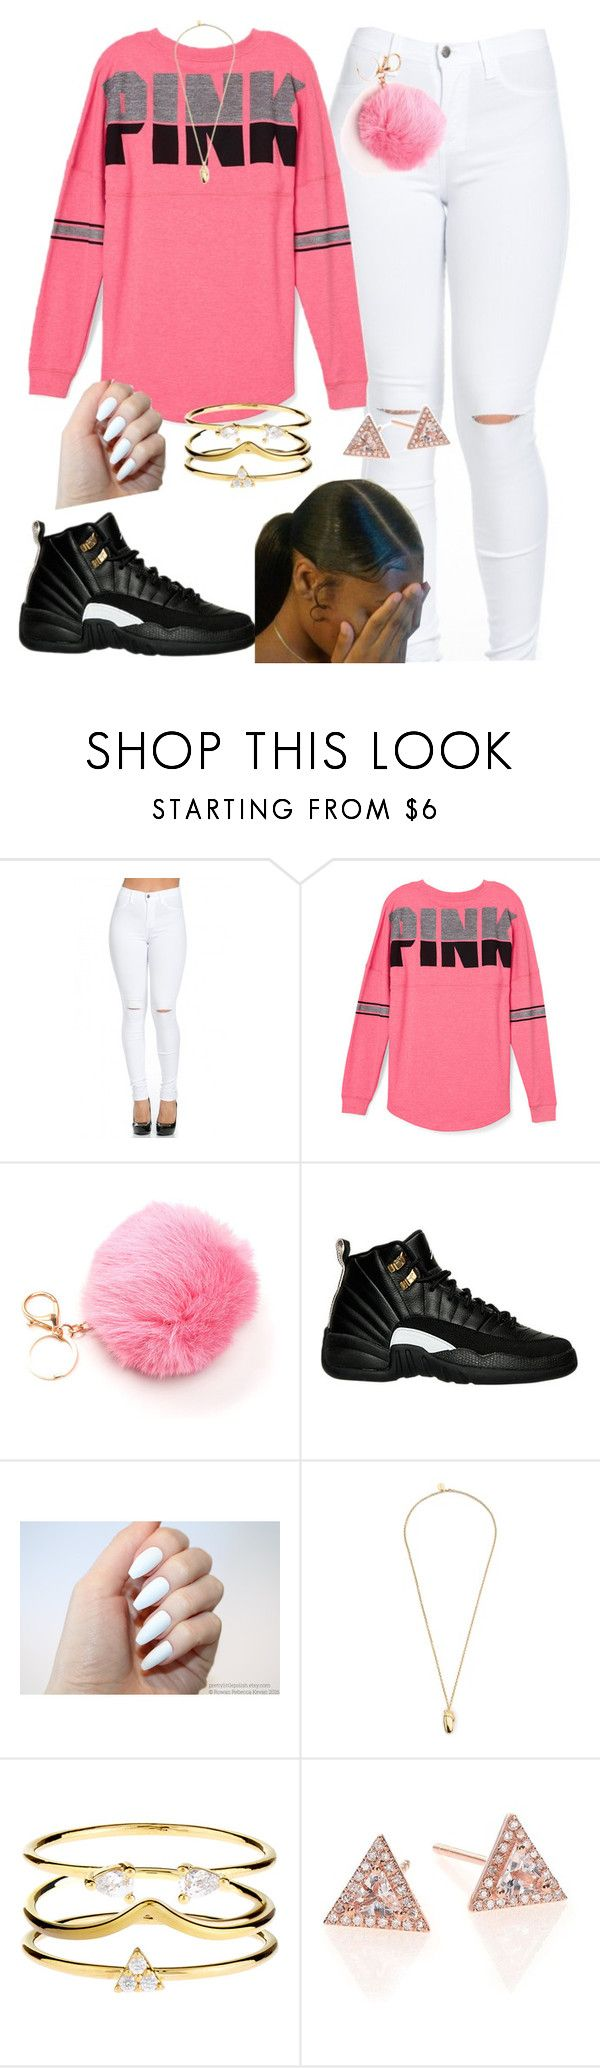 """Untitled #301"" by kitty900 ❤ liked on Polyvore featuring Victoria's Secret PINK, Pembe Club, Accessorize and EF Collection"